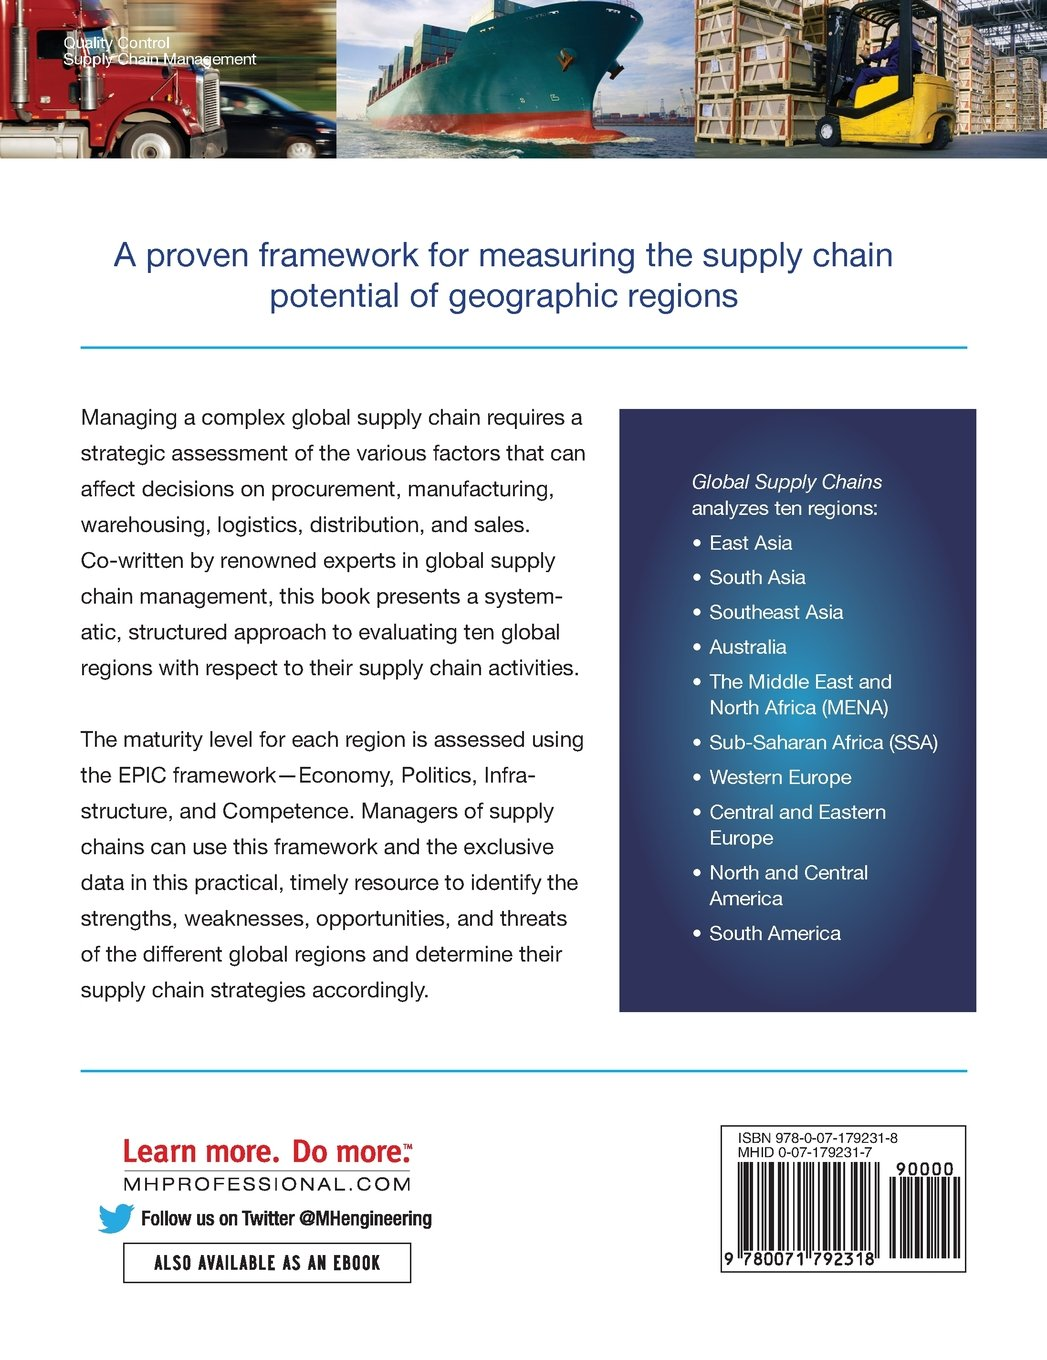 Global Supply Chains: Evaluating Regions on an EPIC